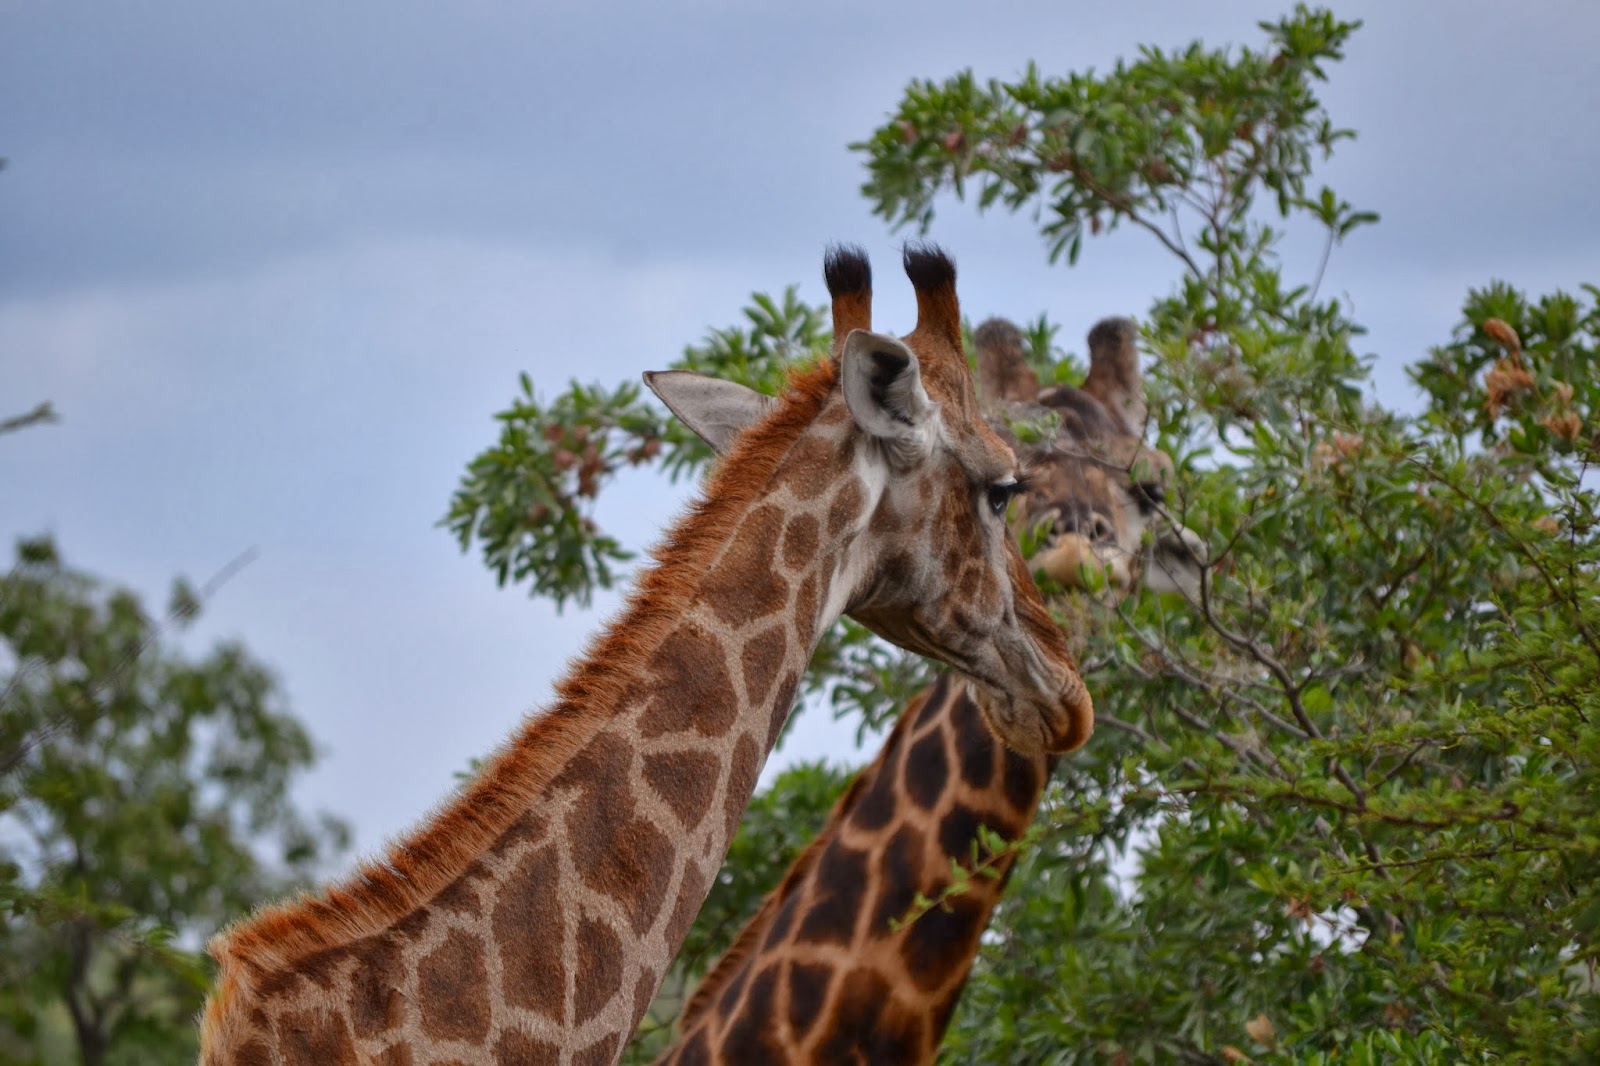 Two giraffe eating leaves